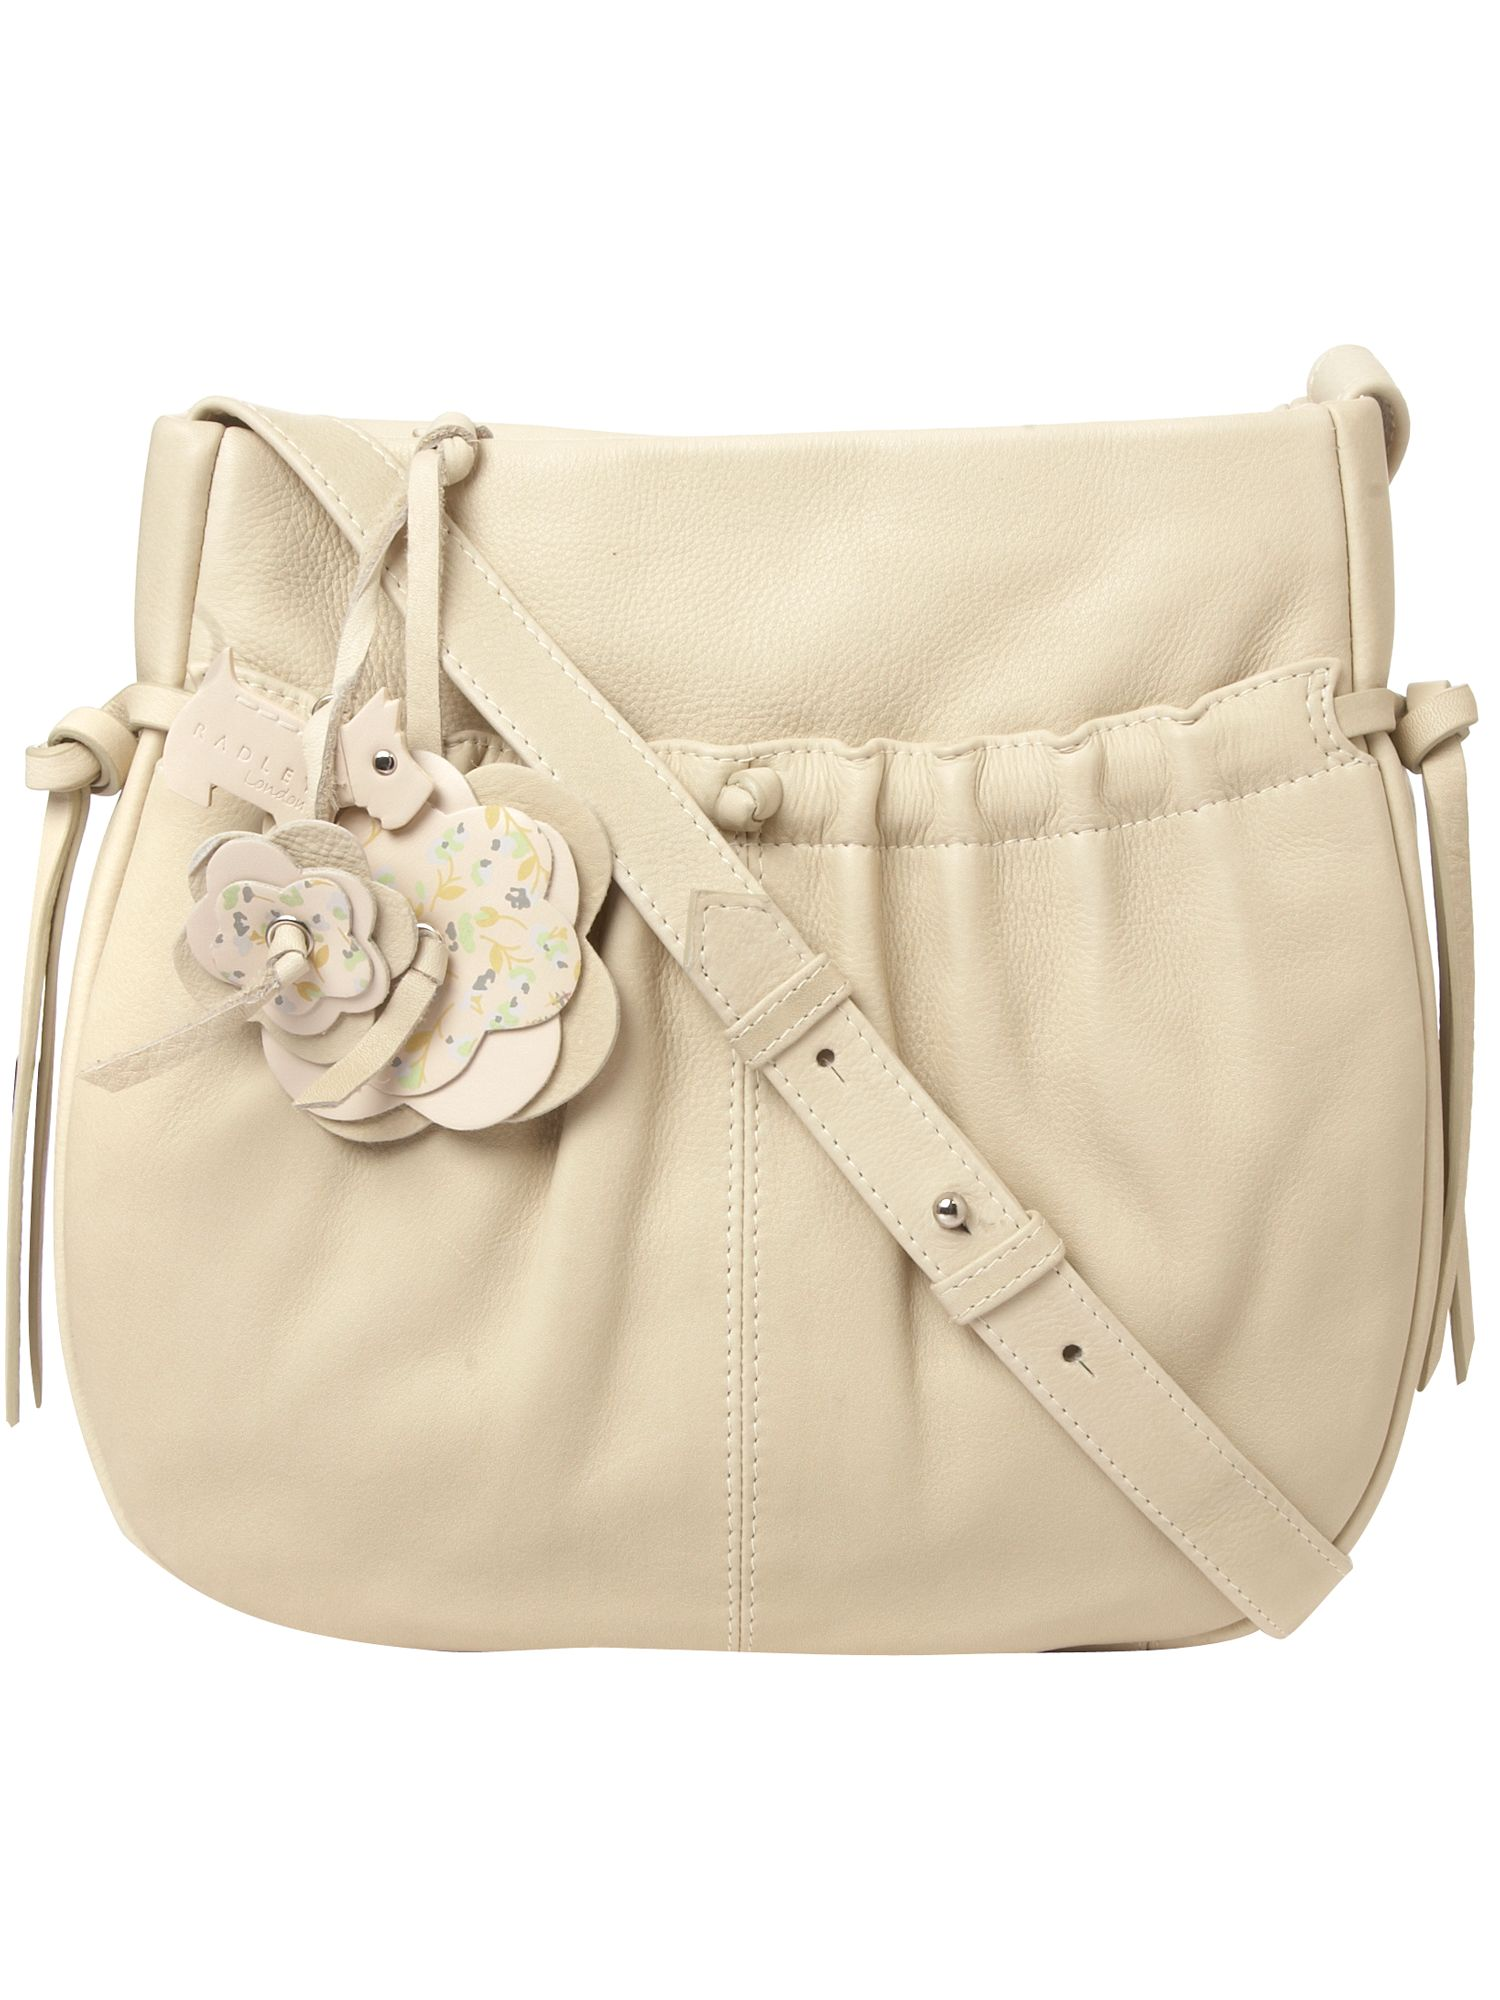 Radley Charleston Across the body bag product image